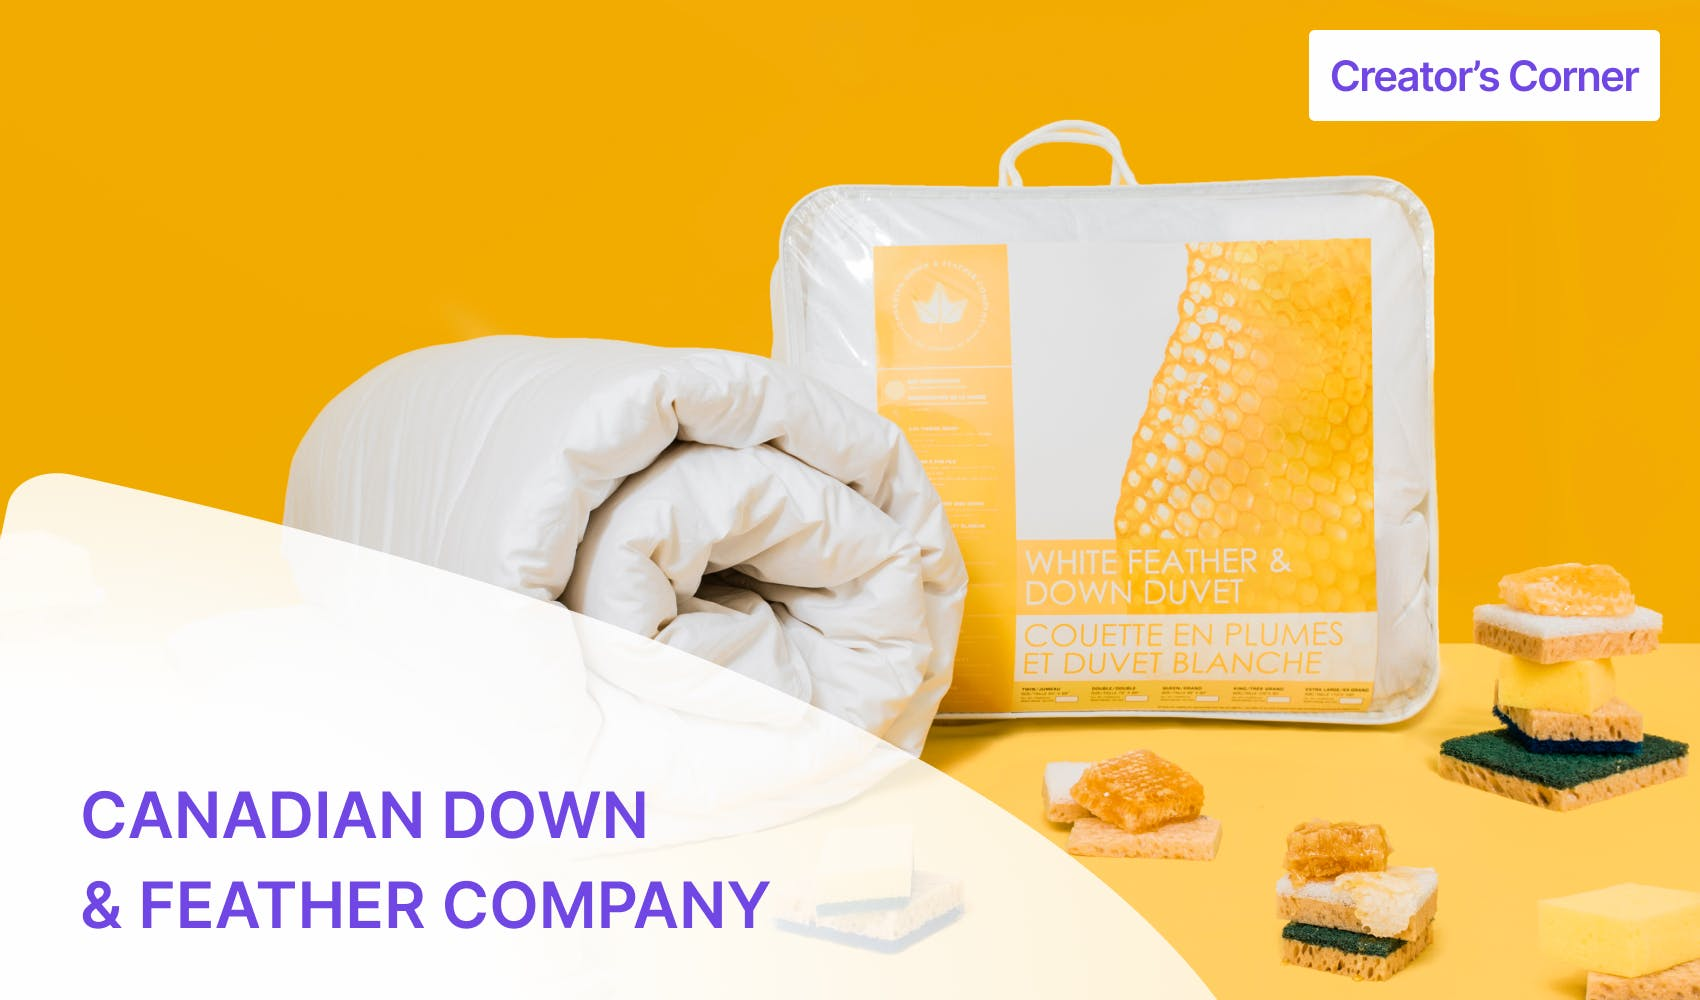 Canadian Down & Feather Company article banner image